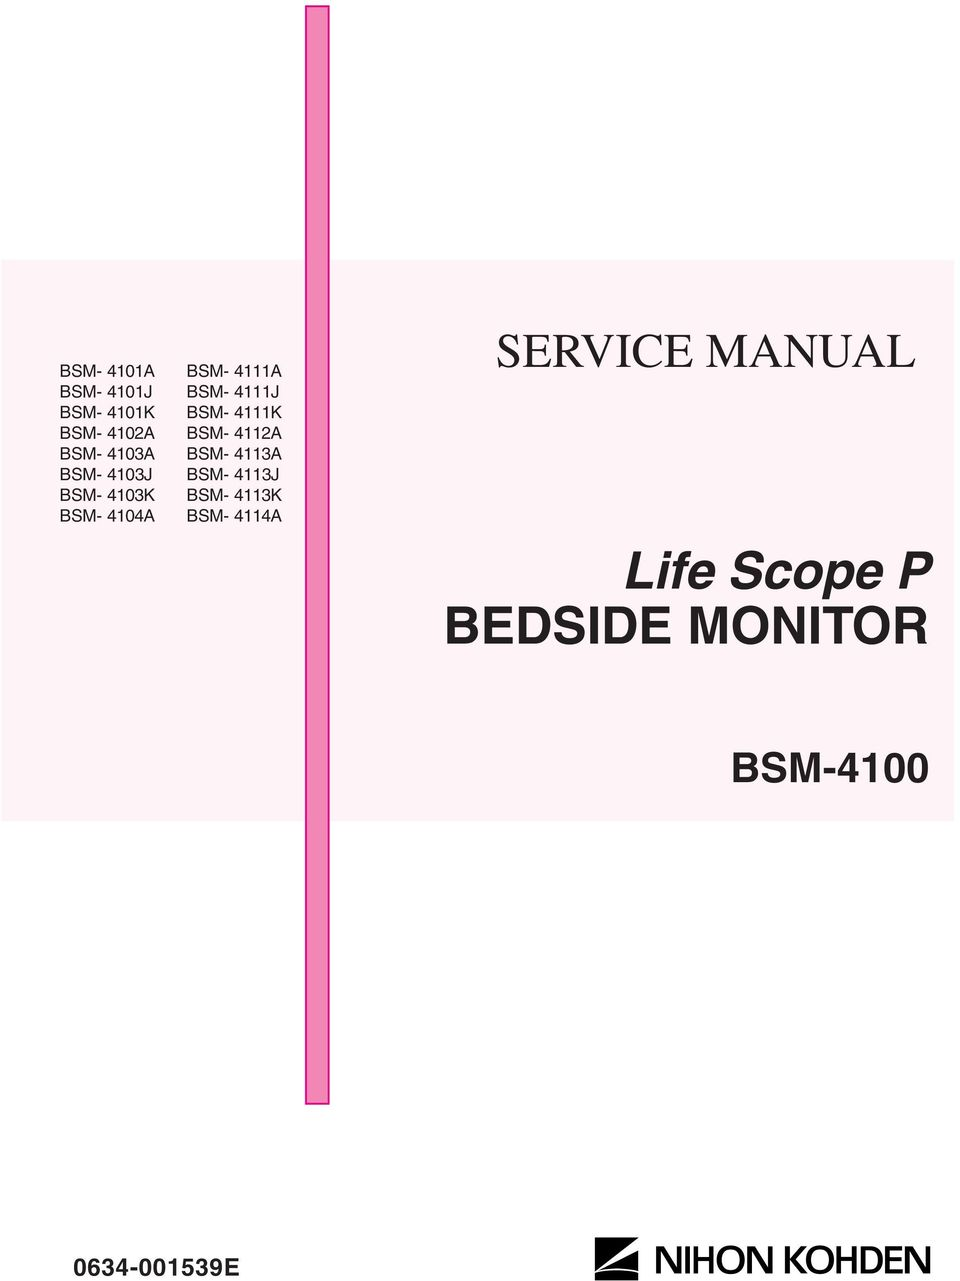 Life scope p bedside monitor service manual bsm e pdf transcription ccuart Choice Image